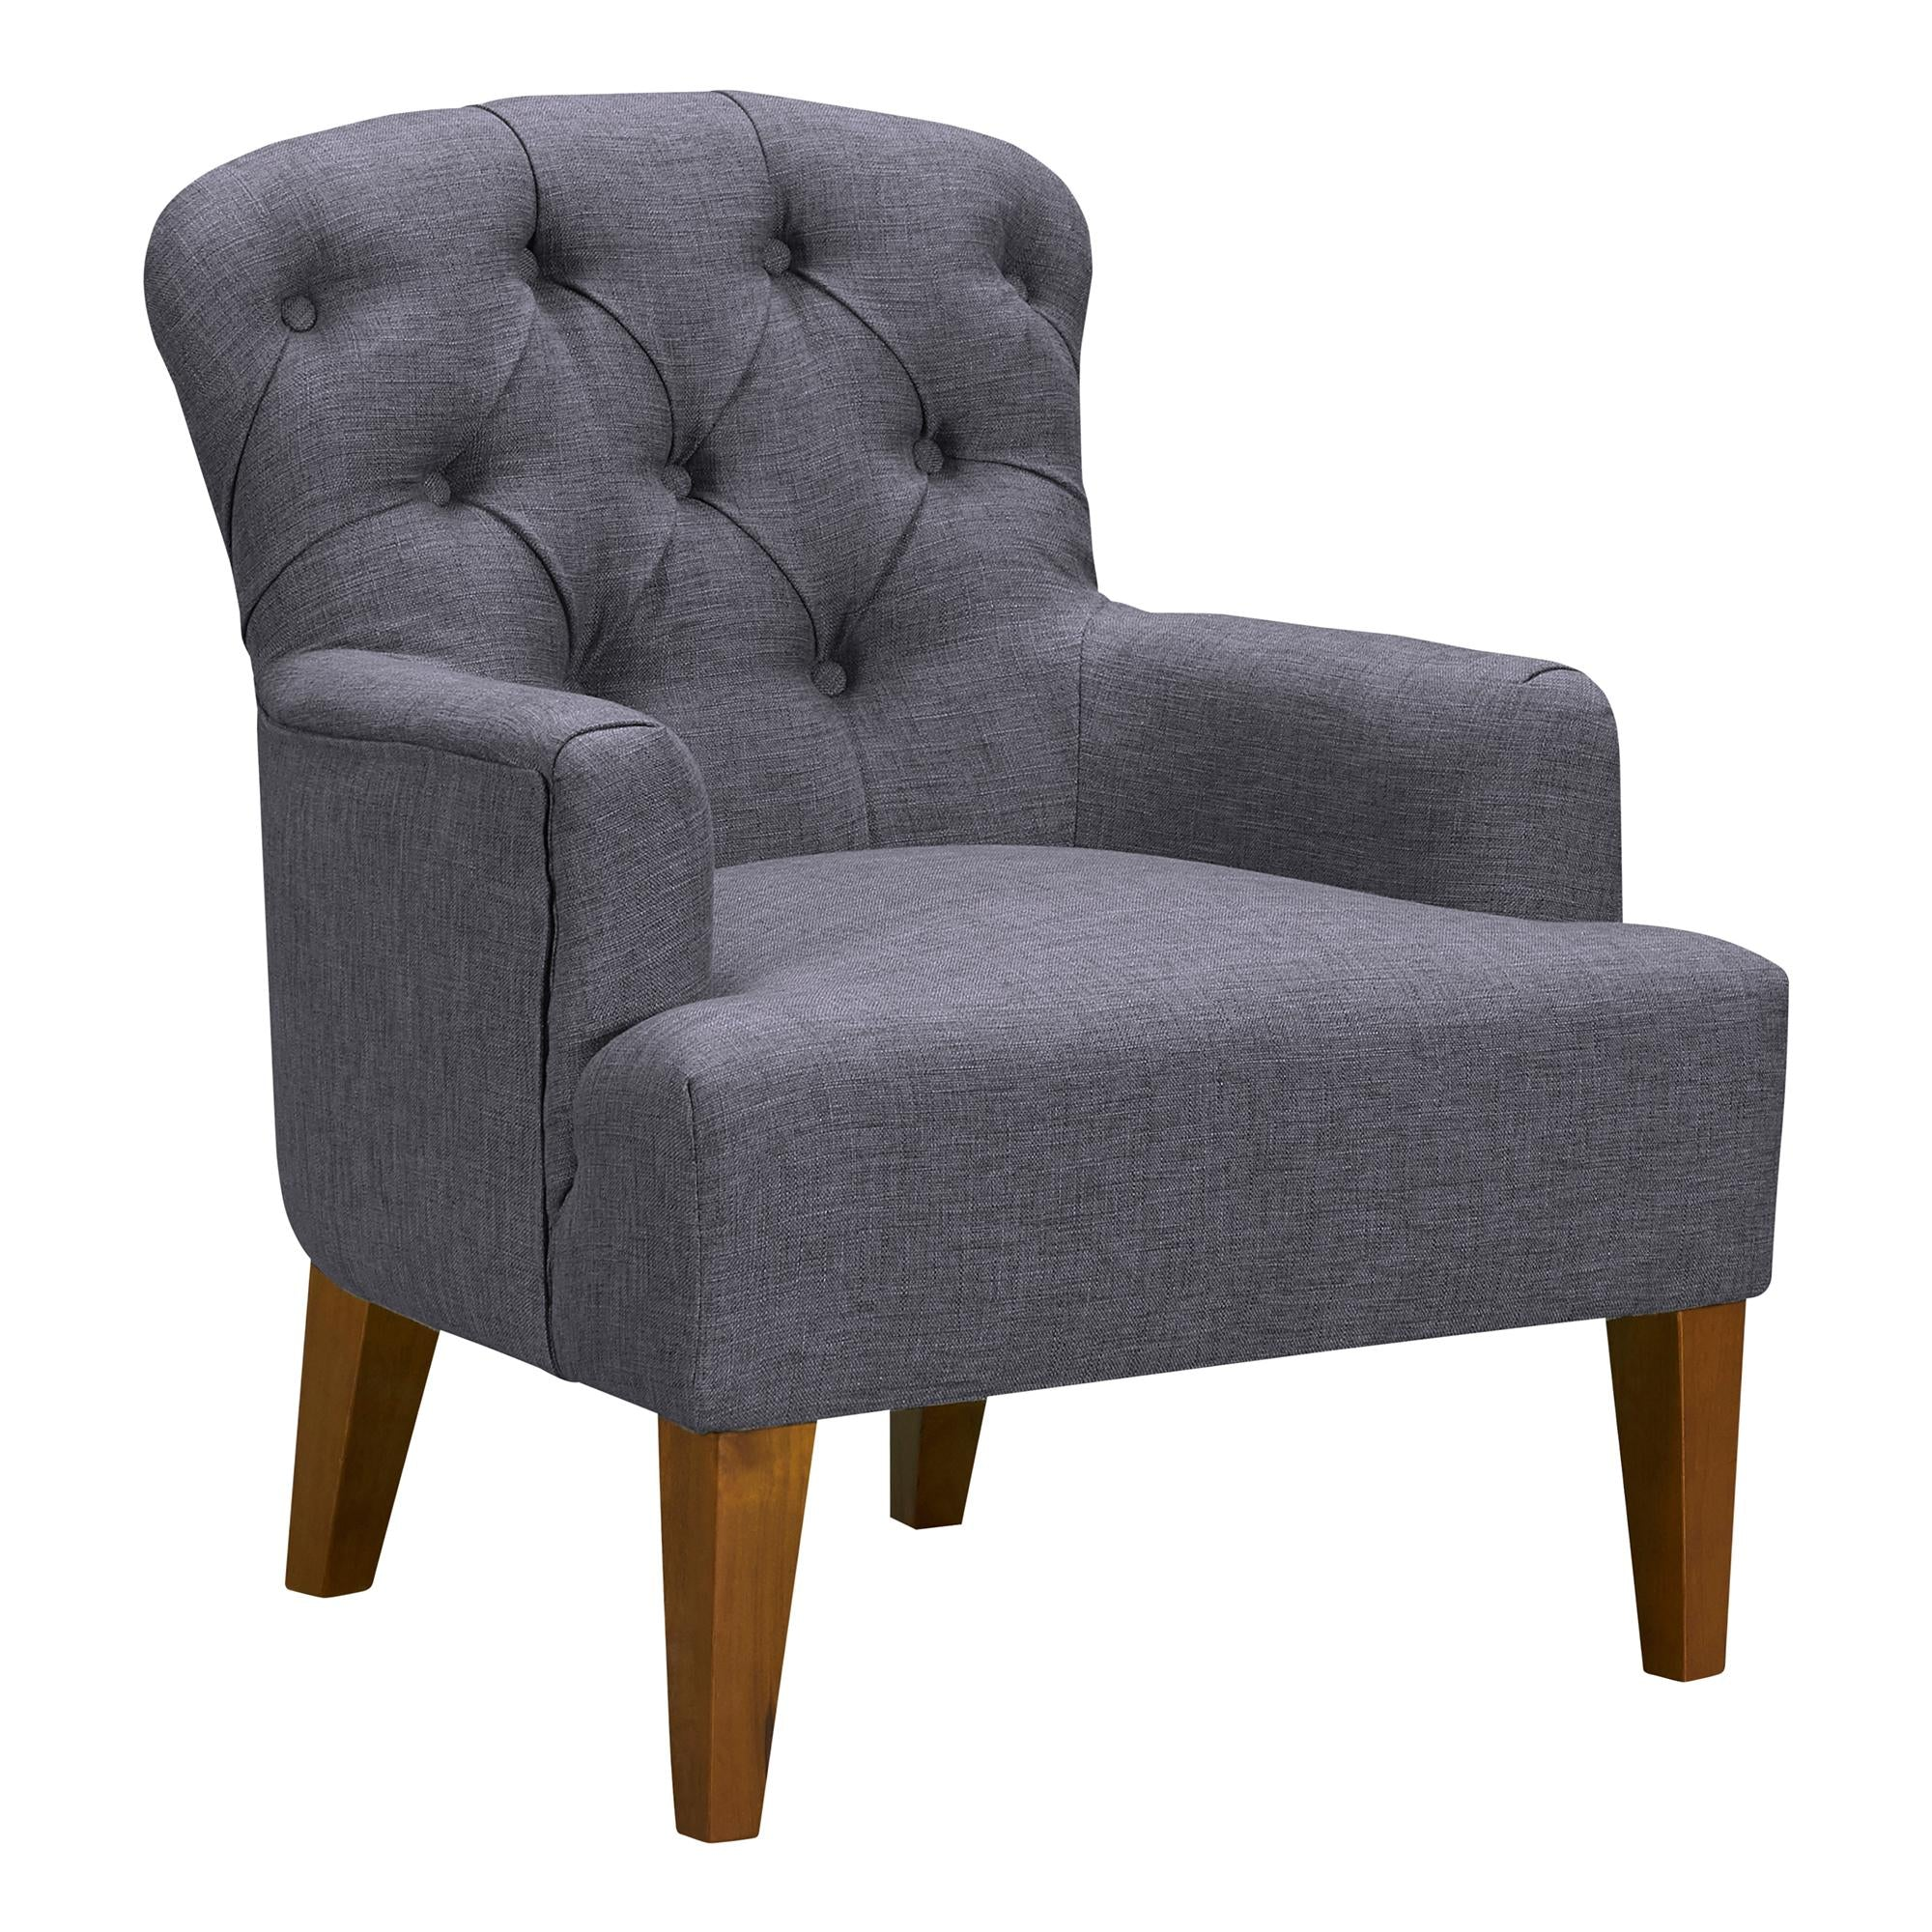 Jewel Mid-Century Accent Chair in Champagne Wood Finish and Dark Grey Fabric